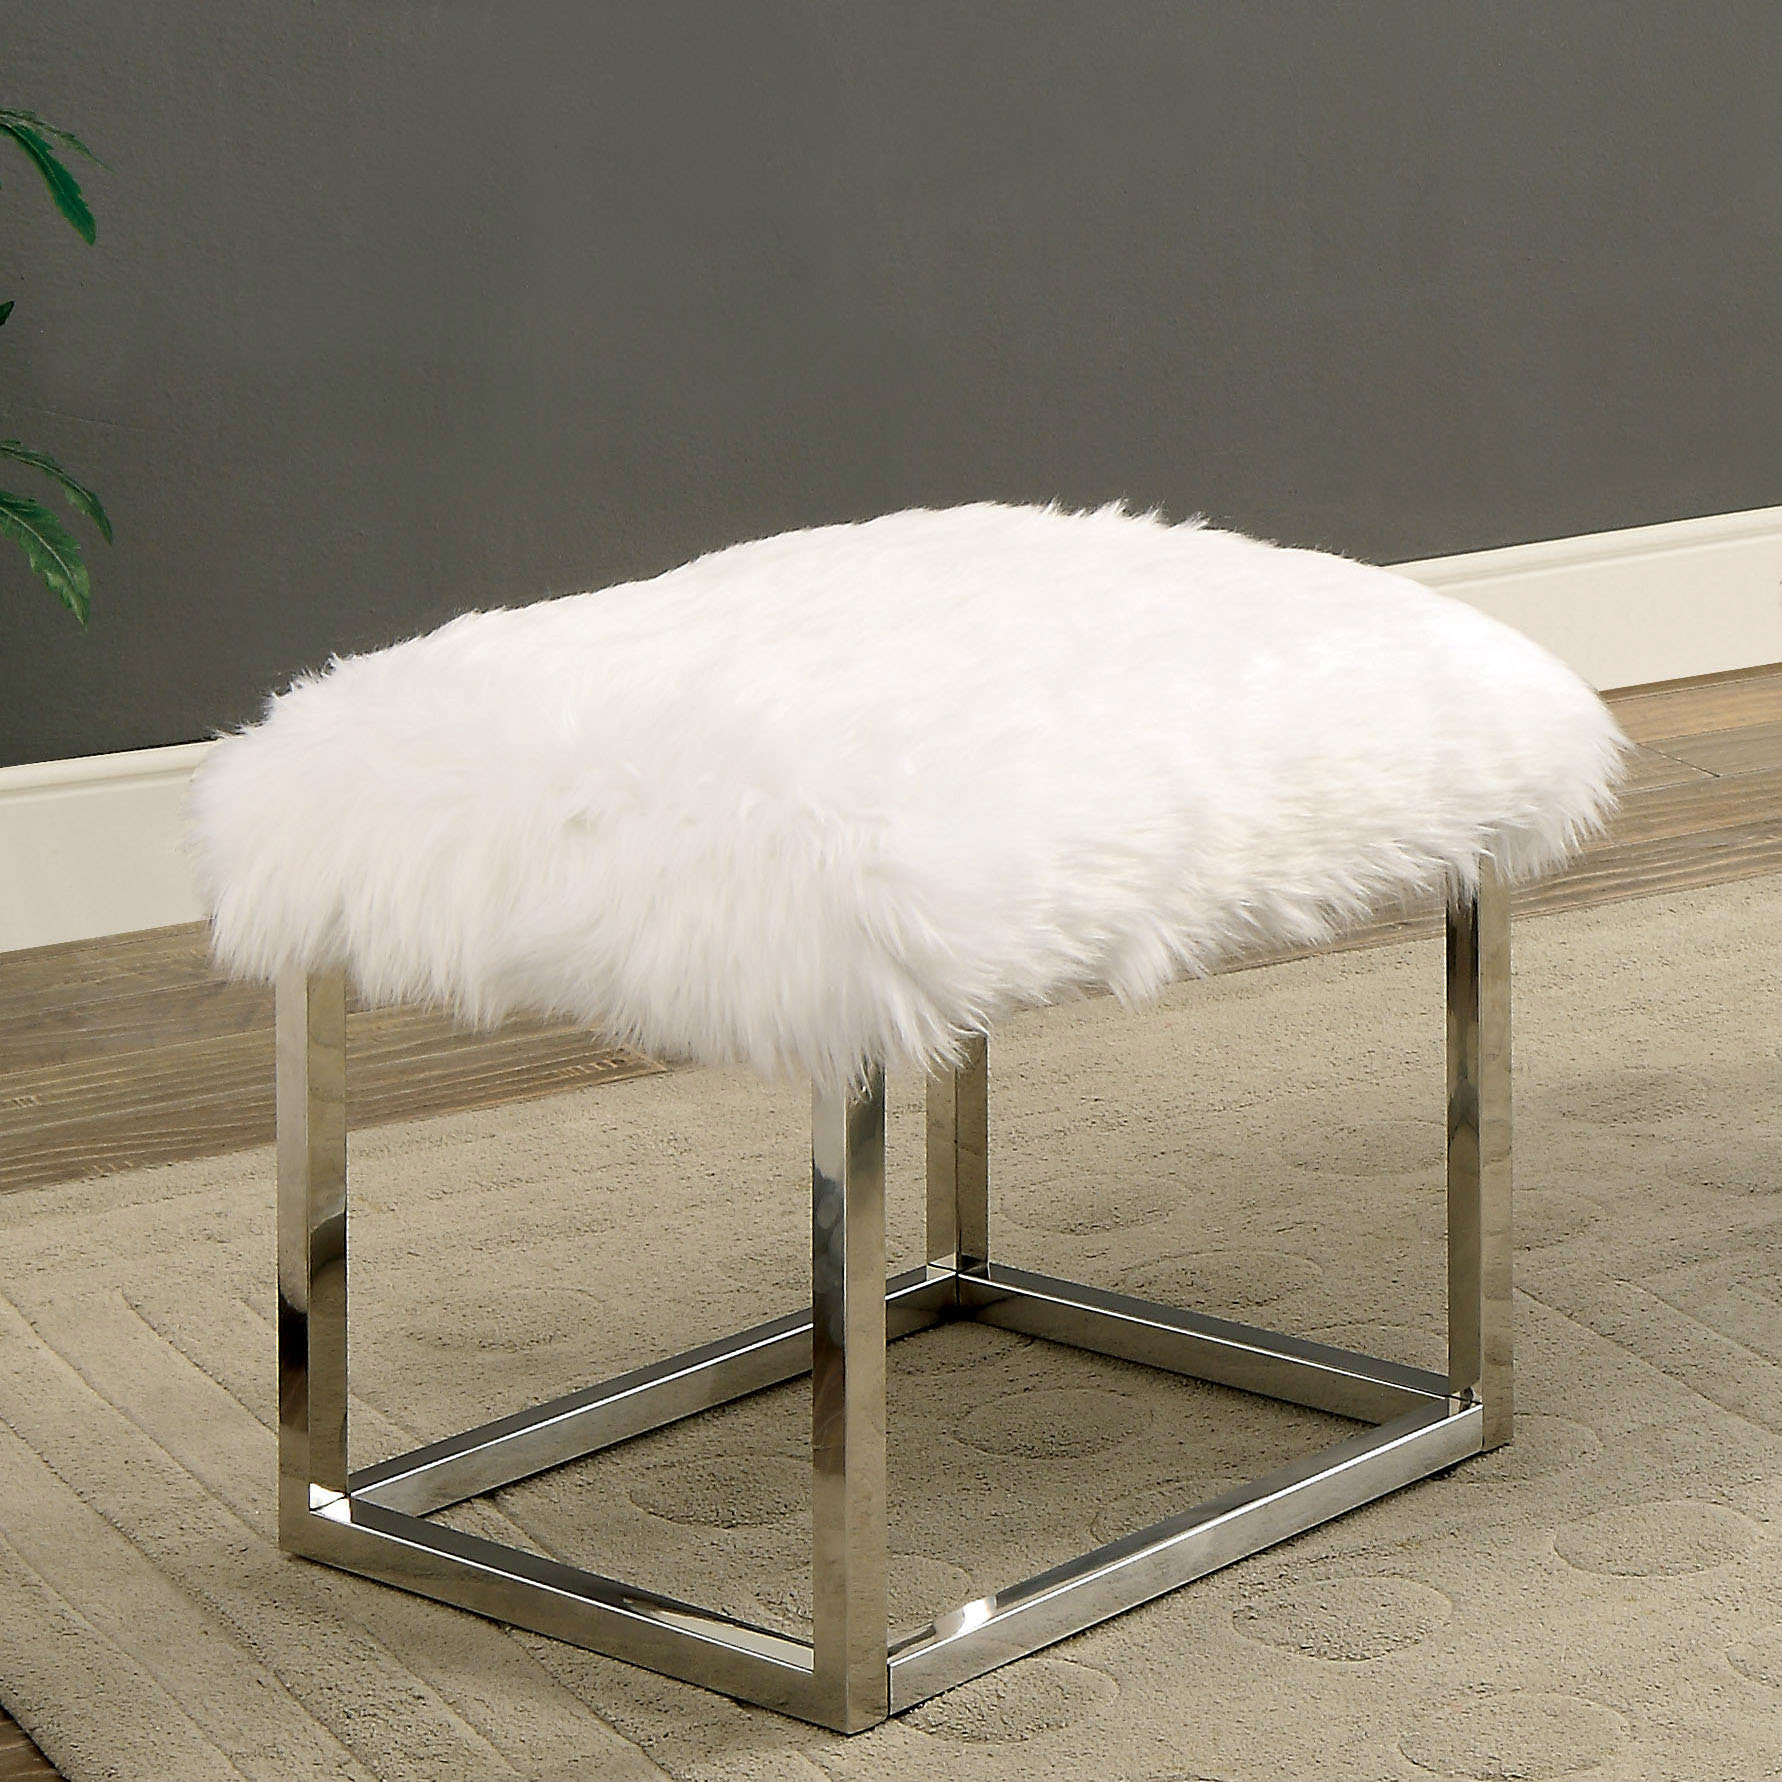 Furniture of America Euna I Contemporary Faux Fur Small Bench, Multiple Colors